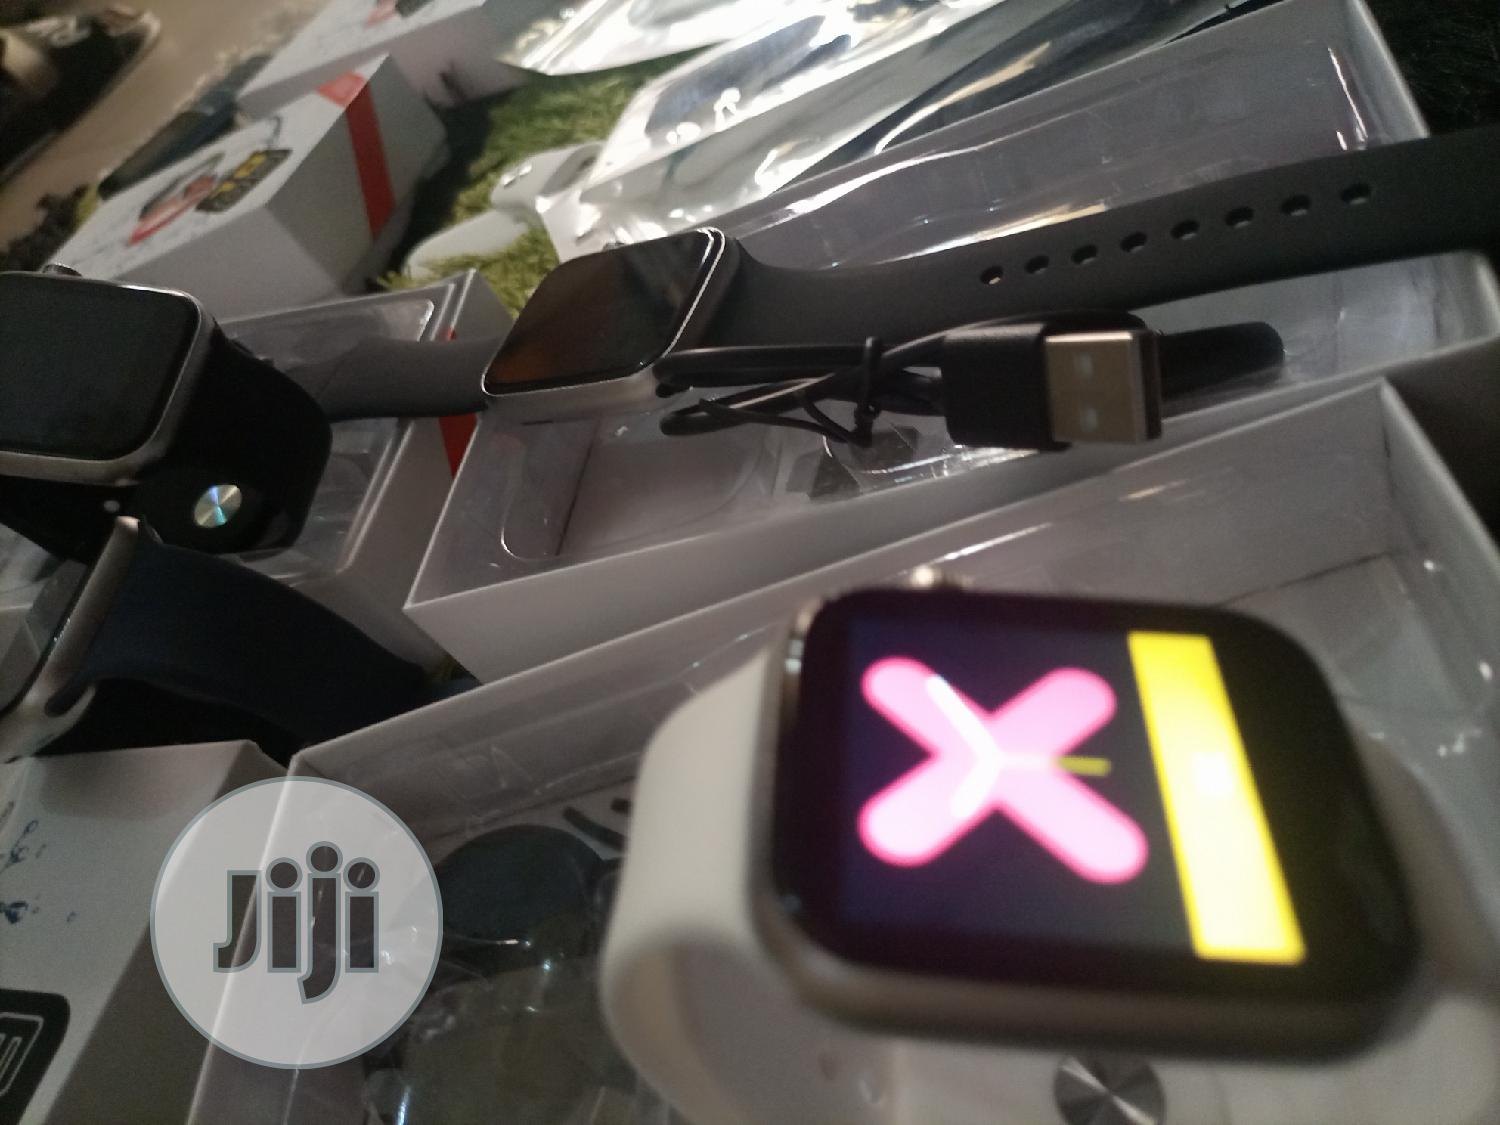 SW Series 6 | Smart Watches & Trackers for sale in Benin City, Edo State, Nigeria